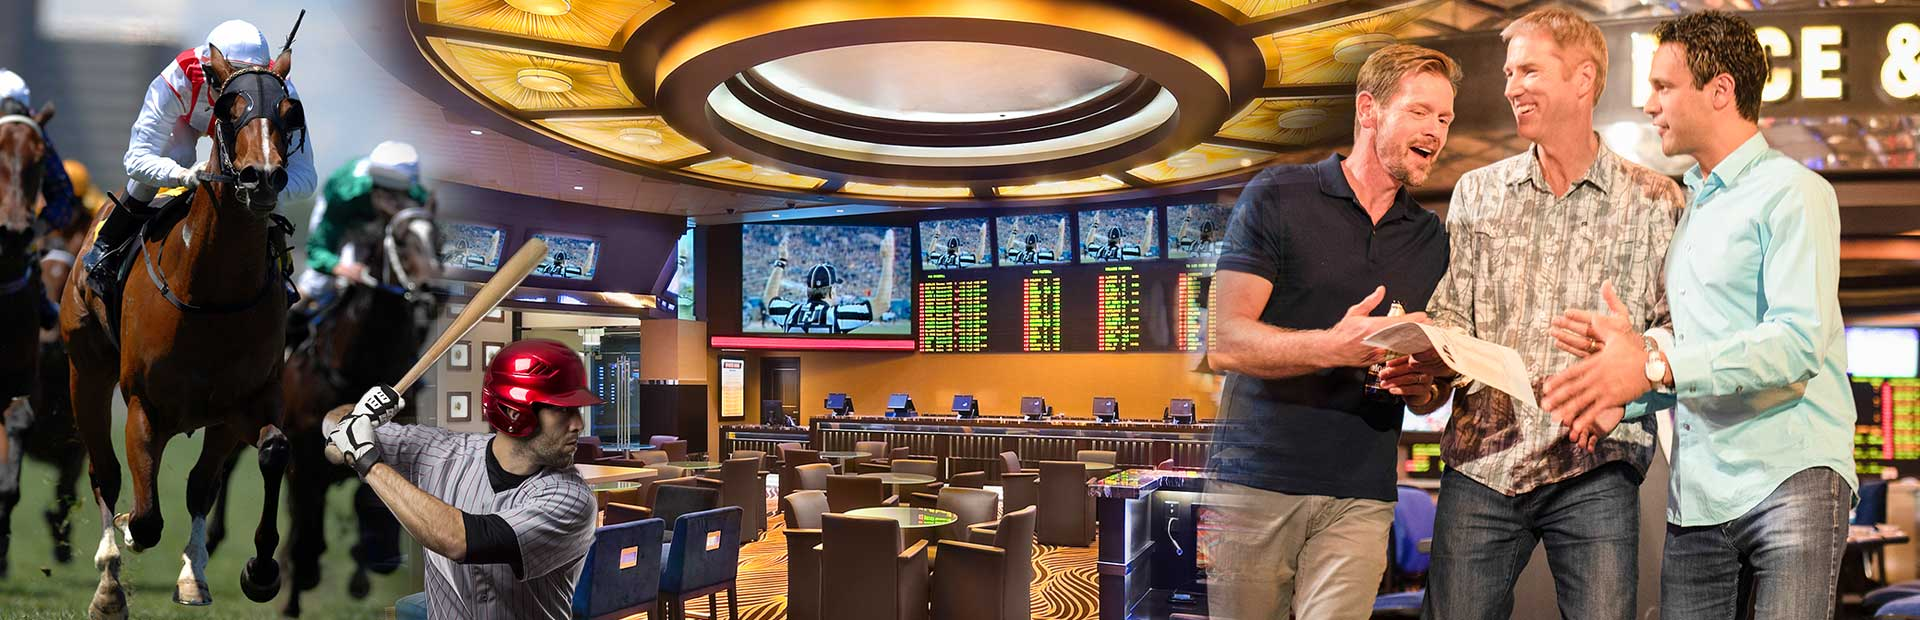 Race and Sports Book at Atlantis